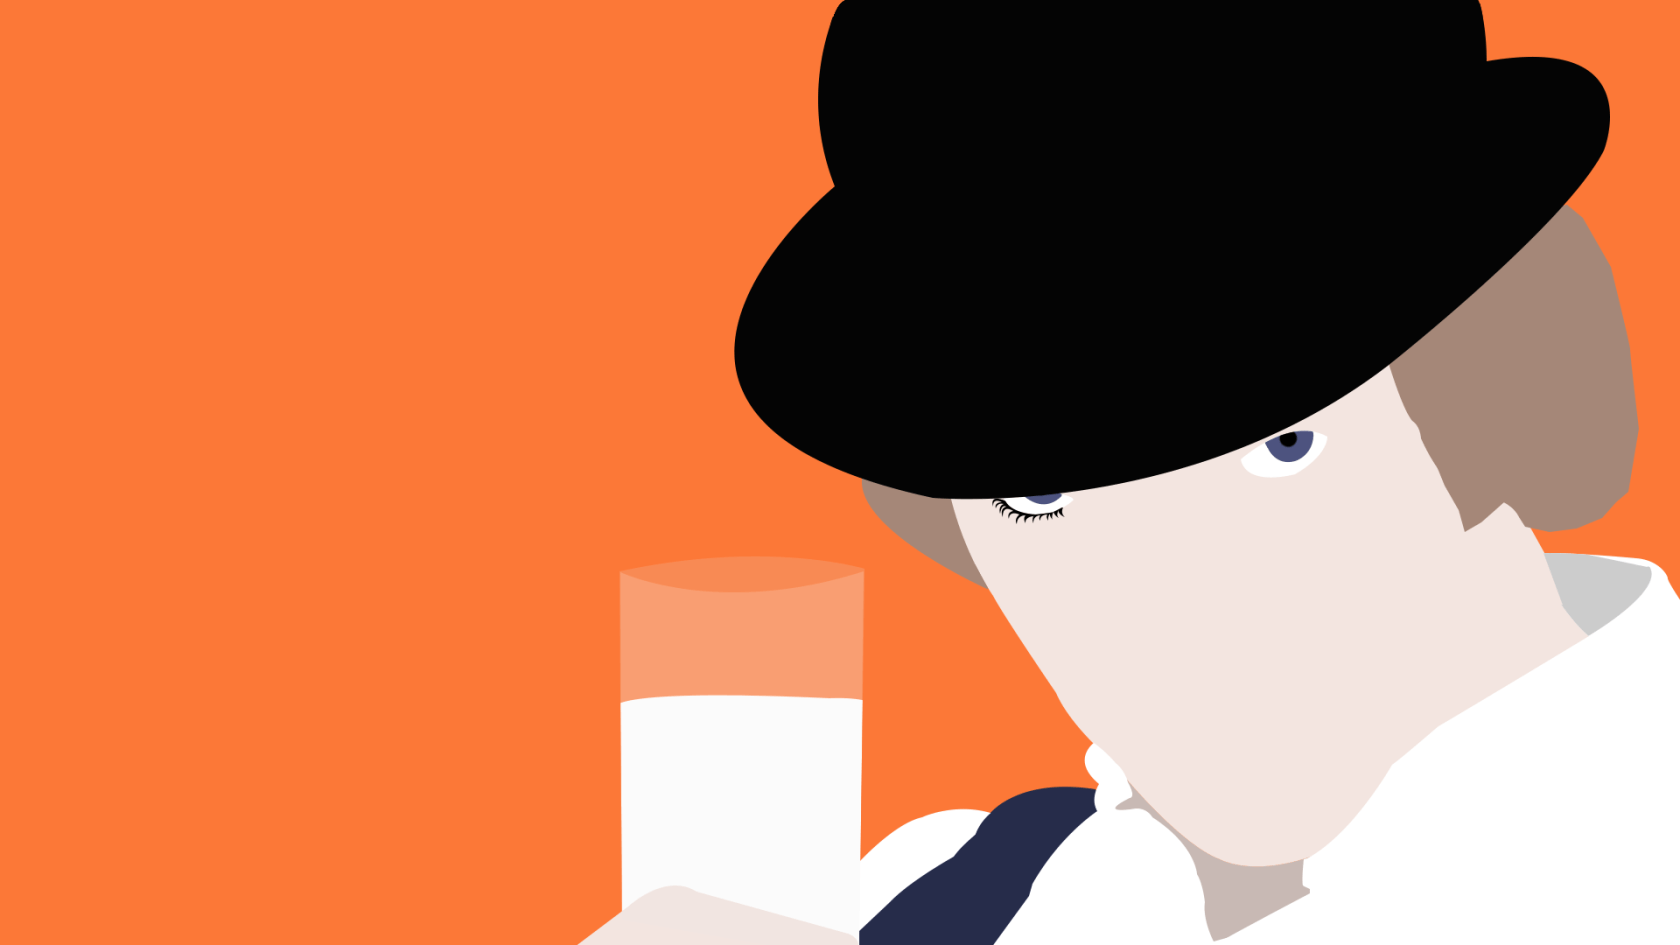 Clockwork Orange Computer Wallpapers, Desktop Backgrounds ...